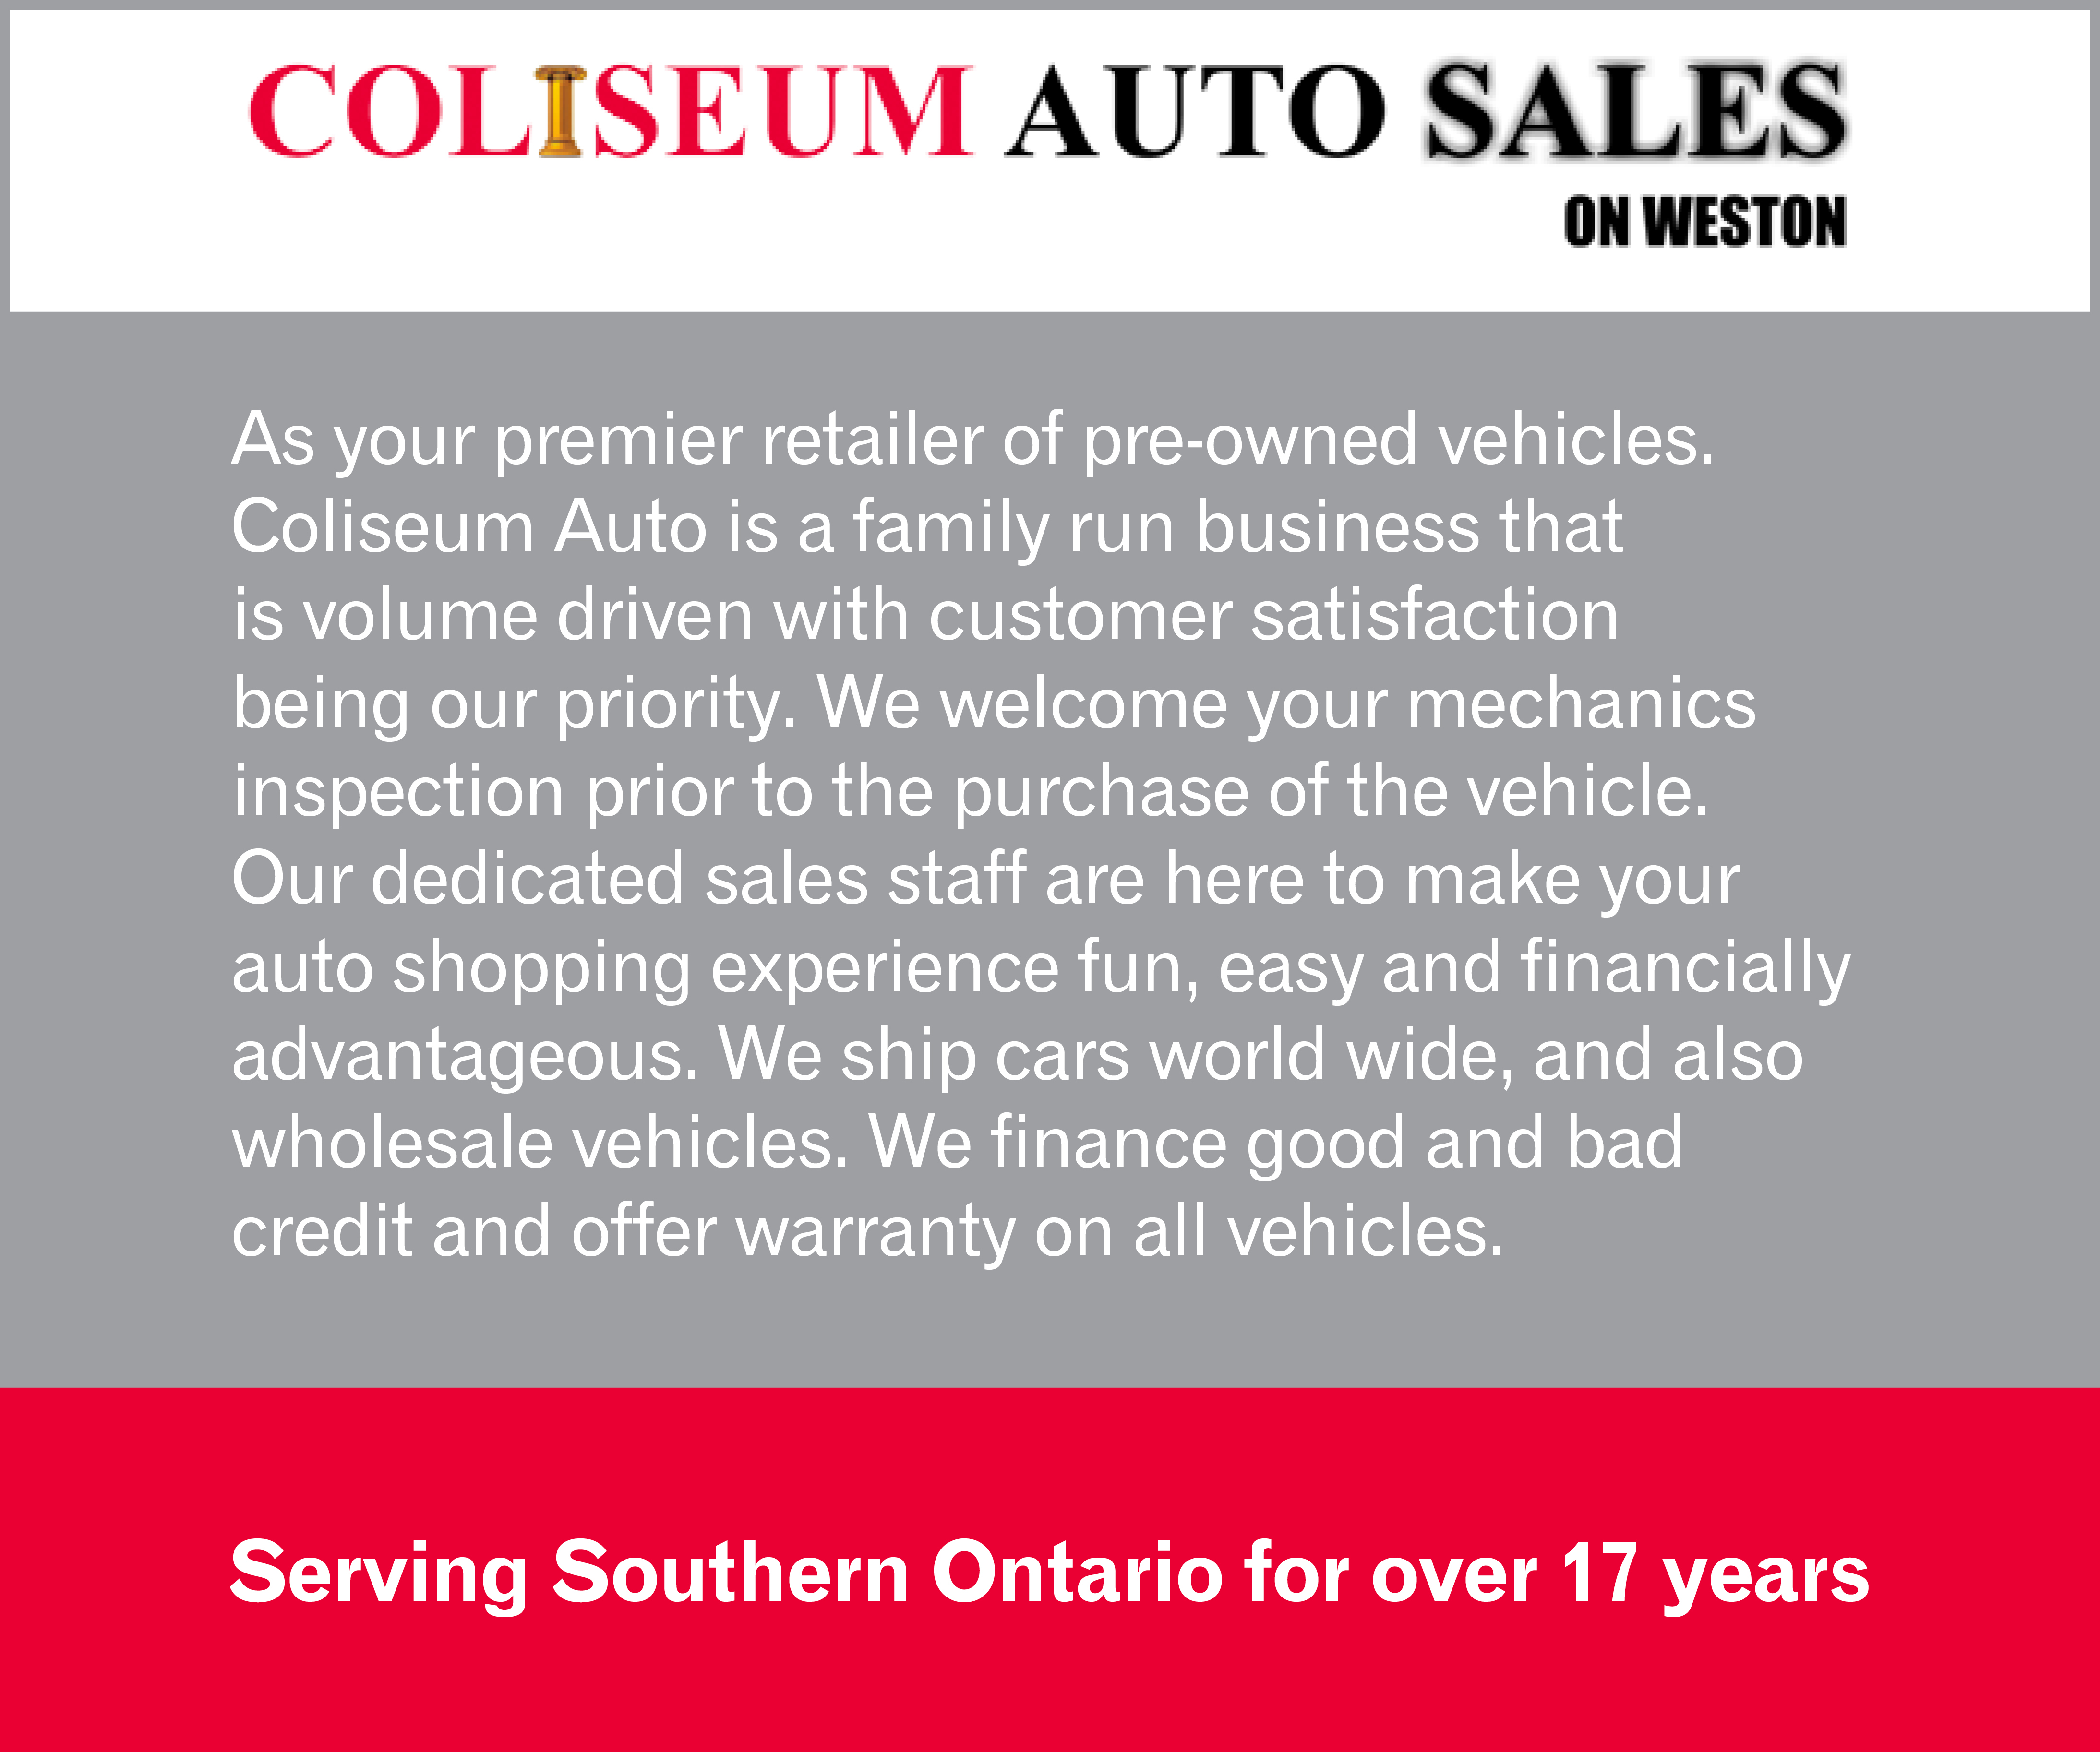 More from Coliseum Auto Sales